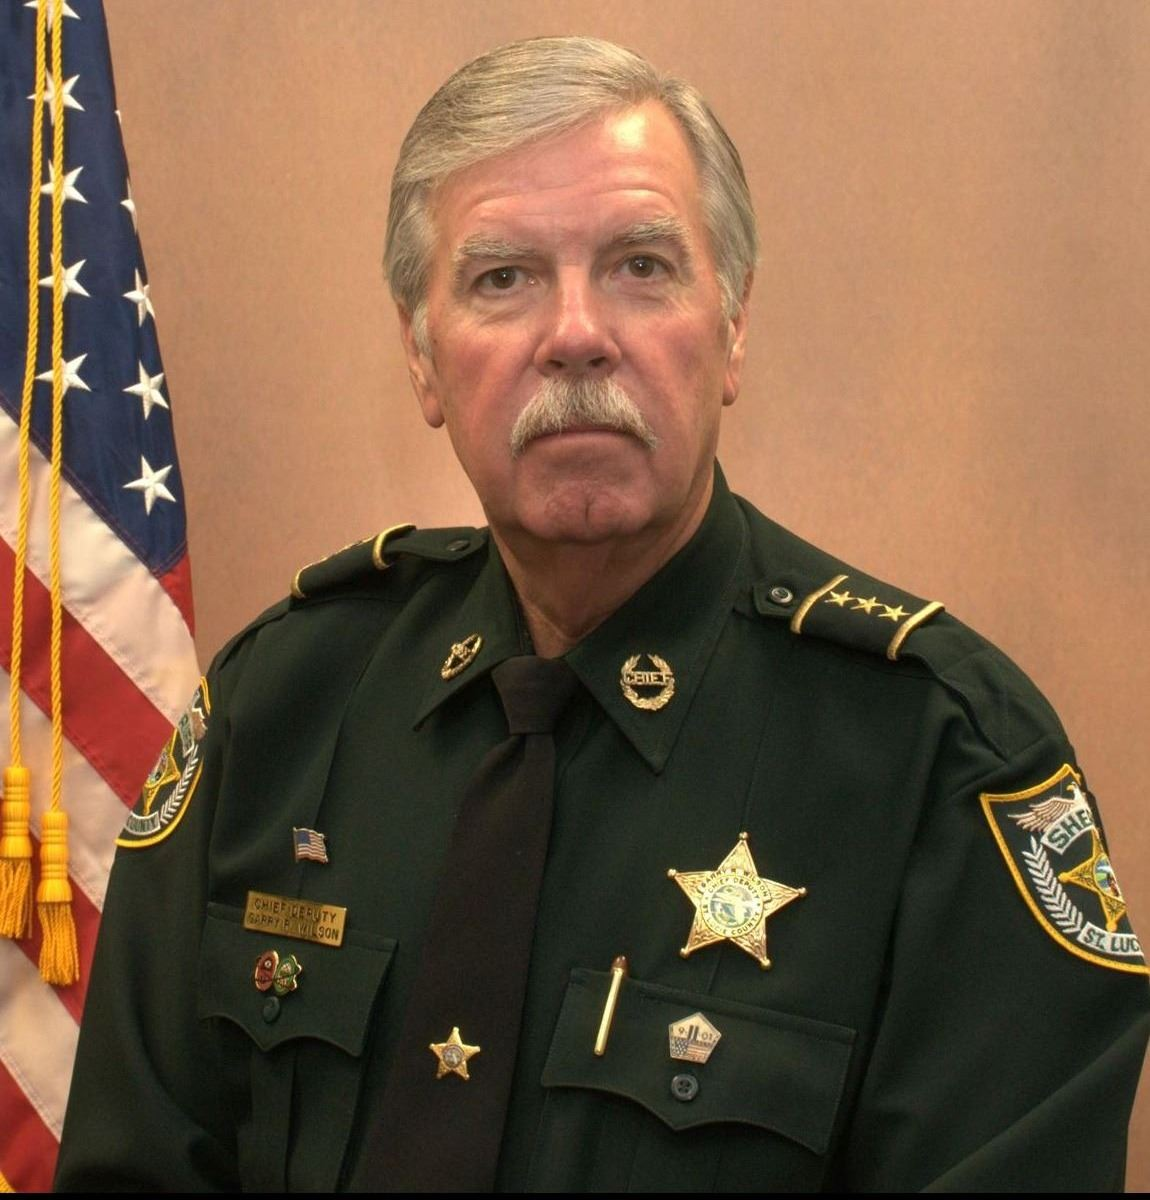 Photo of Chief Deputy Garry Wilson